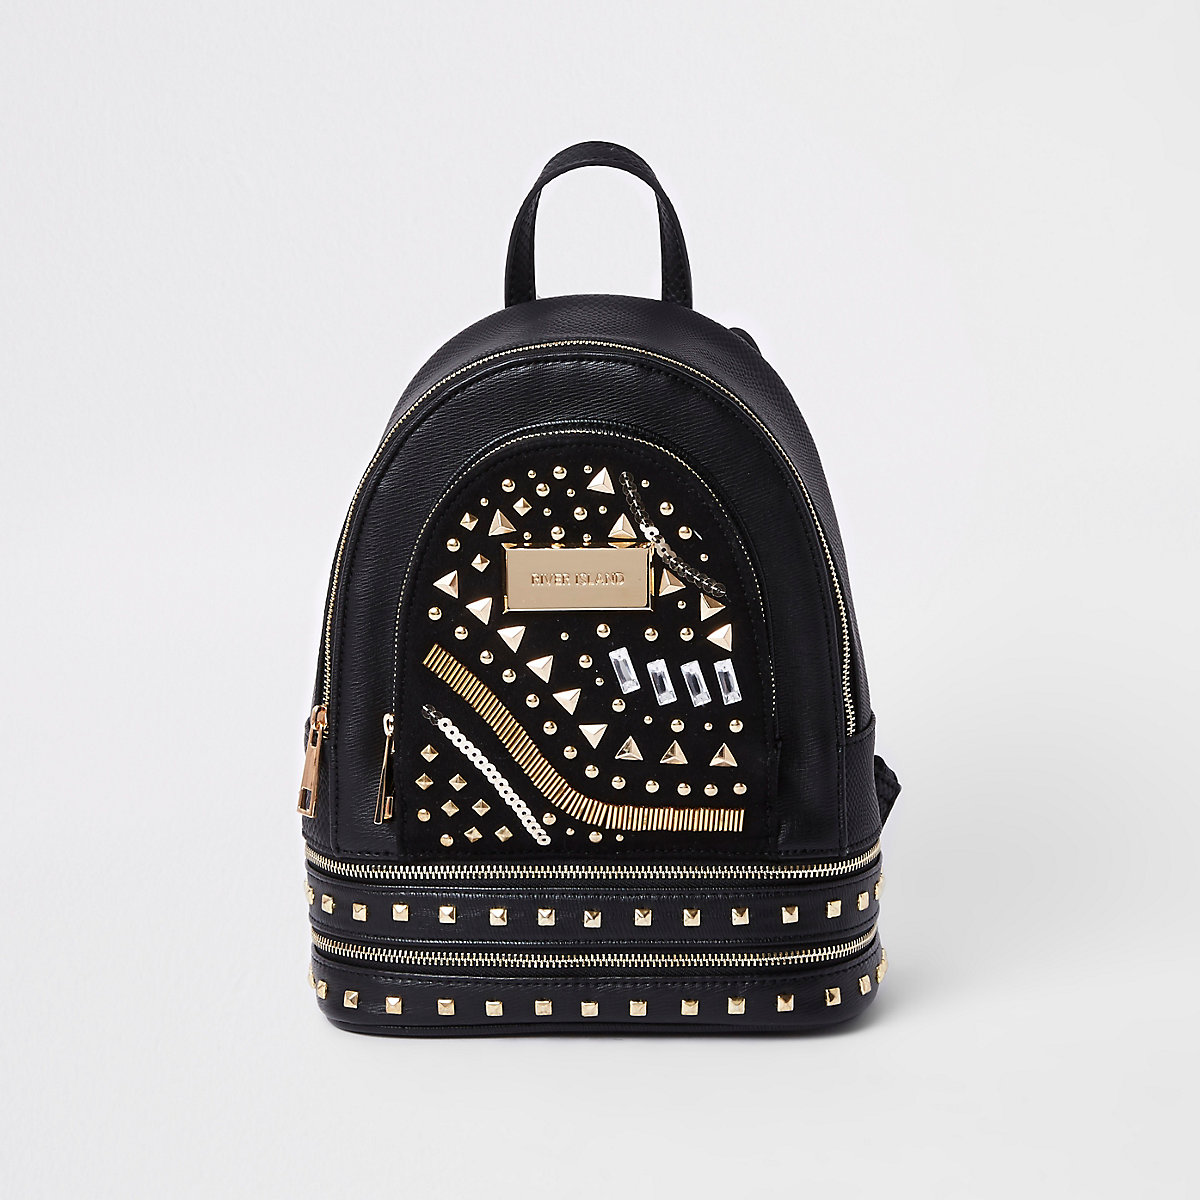 Black mini faux leather backpack